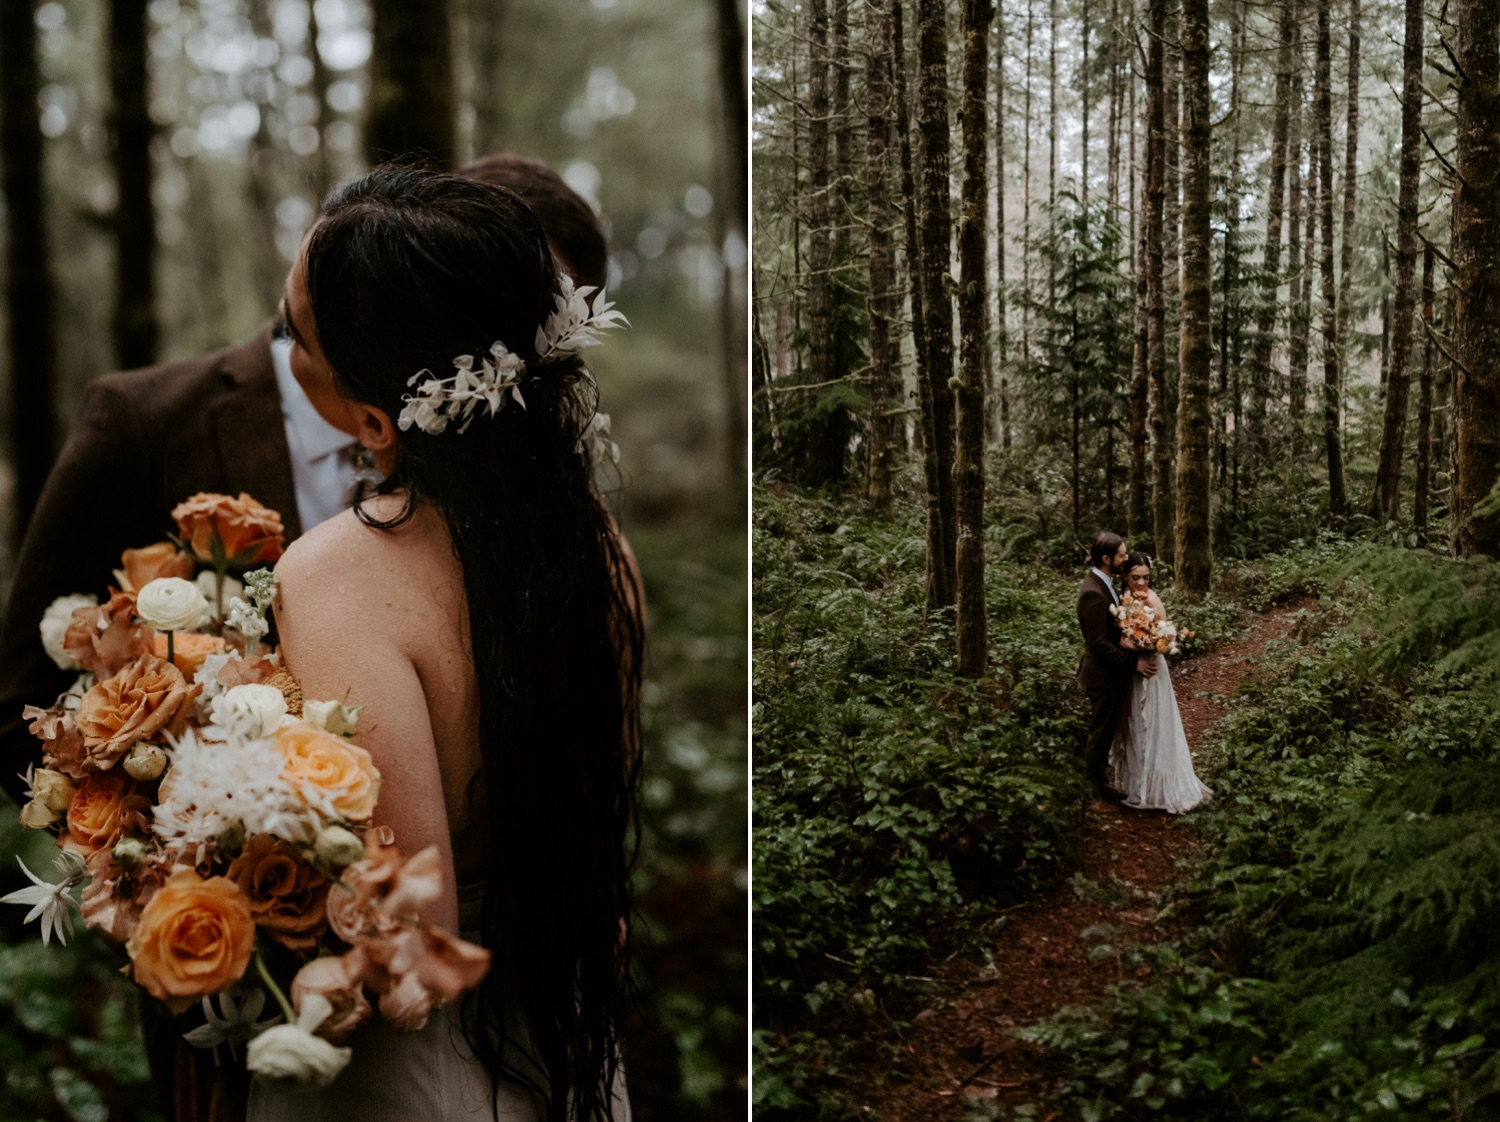 The Woodlands House Sandy Oregon Elopement Portland Elopement Photographer PNW Adventurous Elopement Anais Possamai Photography 042